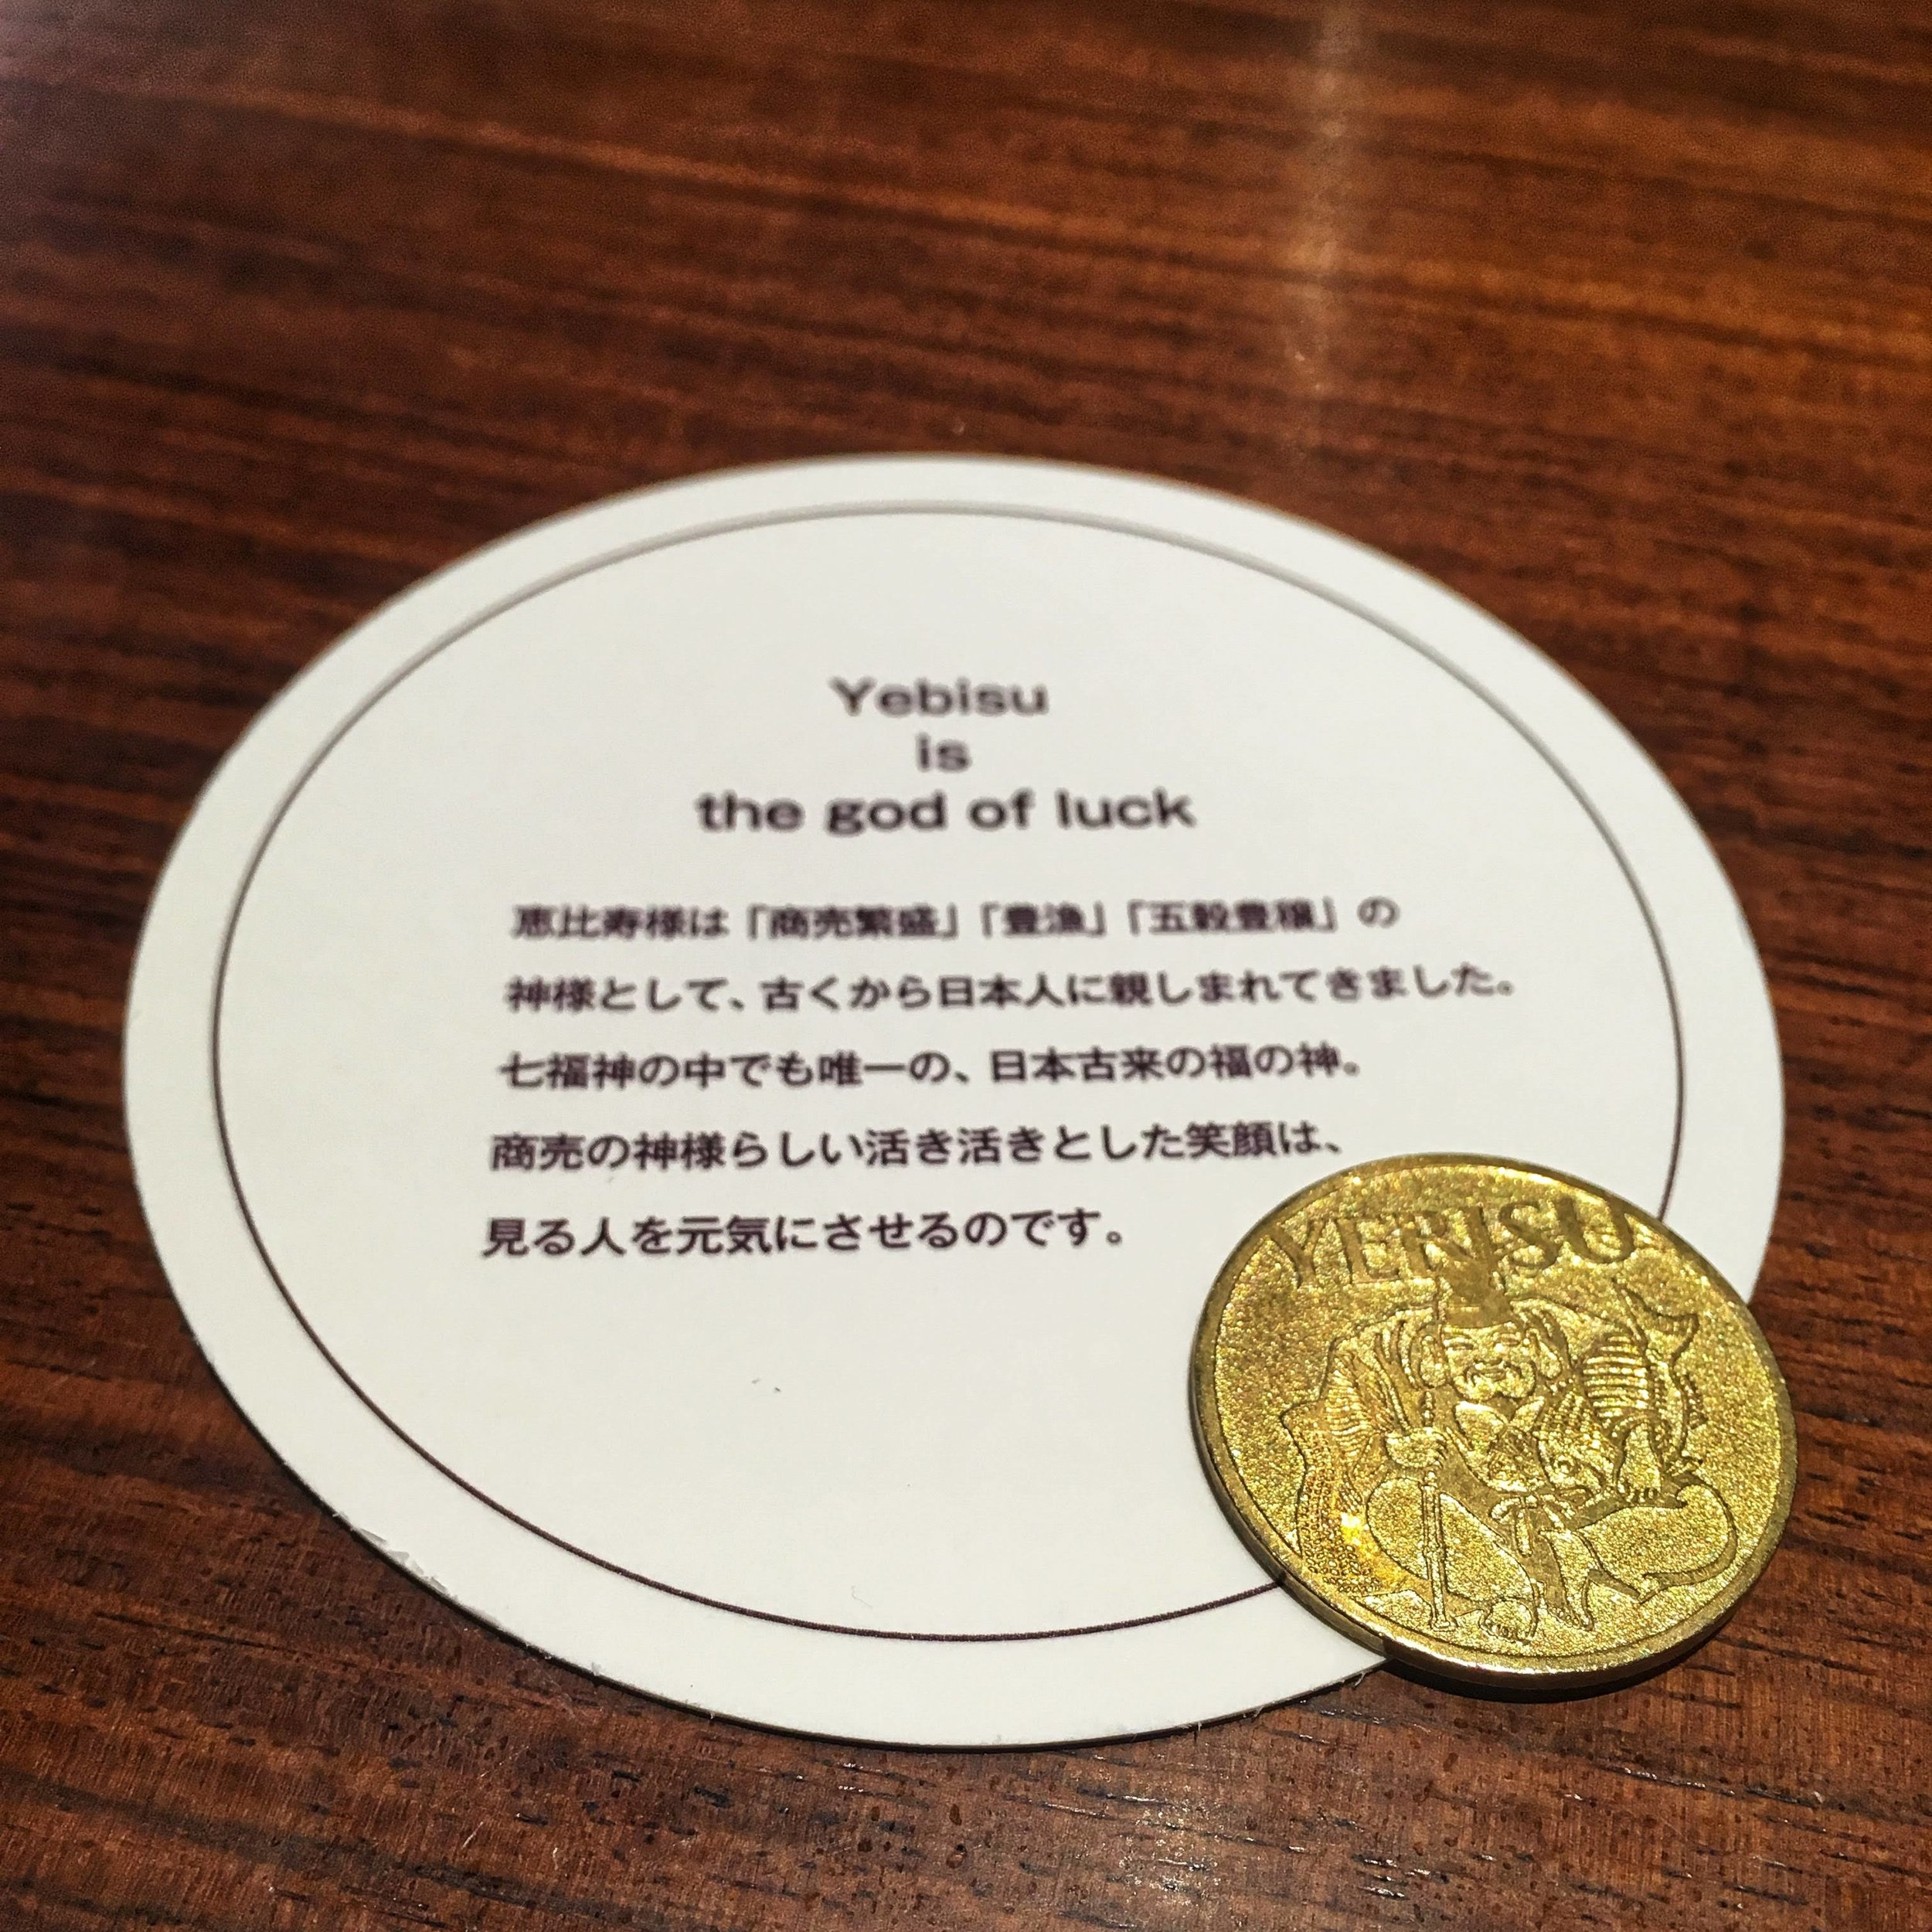 Yebisu gold coin at the tasting hall; exchange 400 yen for a Yebisu Coin, which can be redeemed for a glass of beer in the Tasting Salon